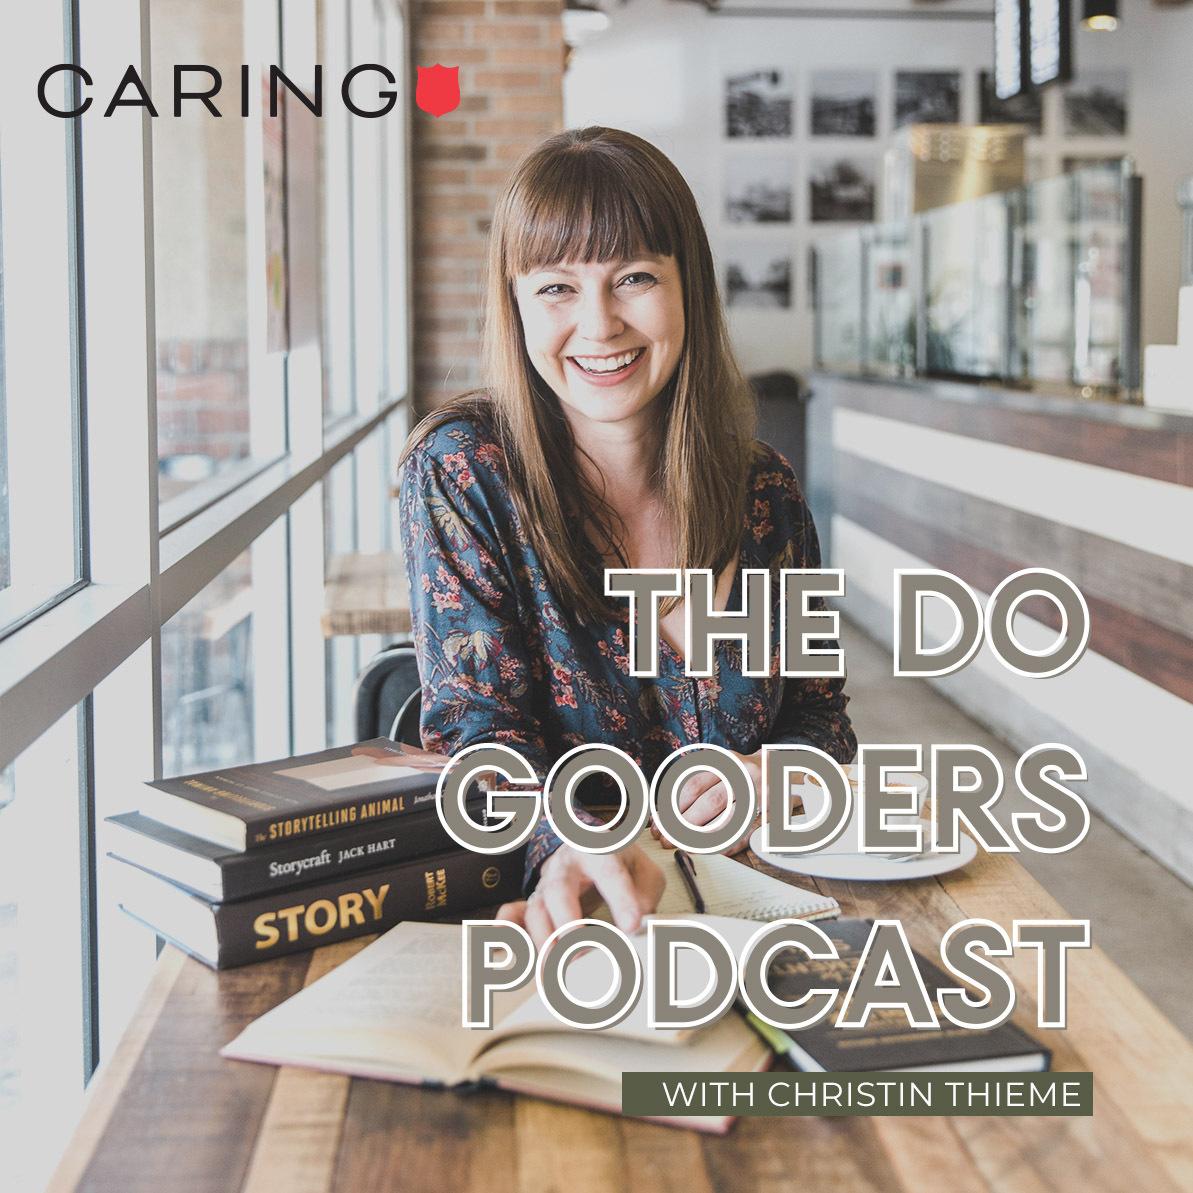 The Do Gooders Podcast podcast show image